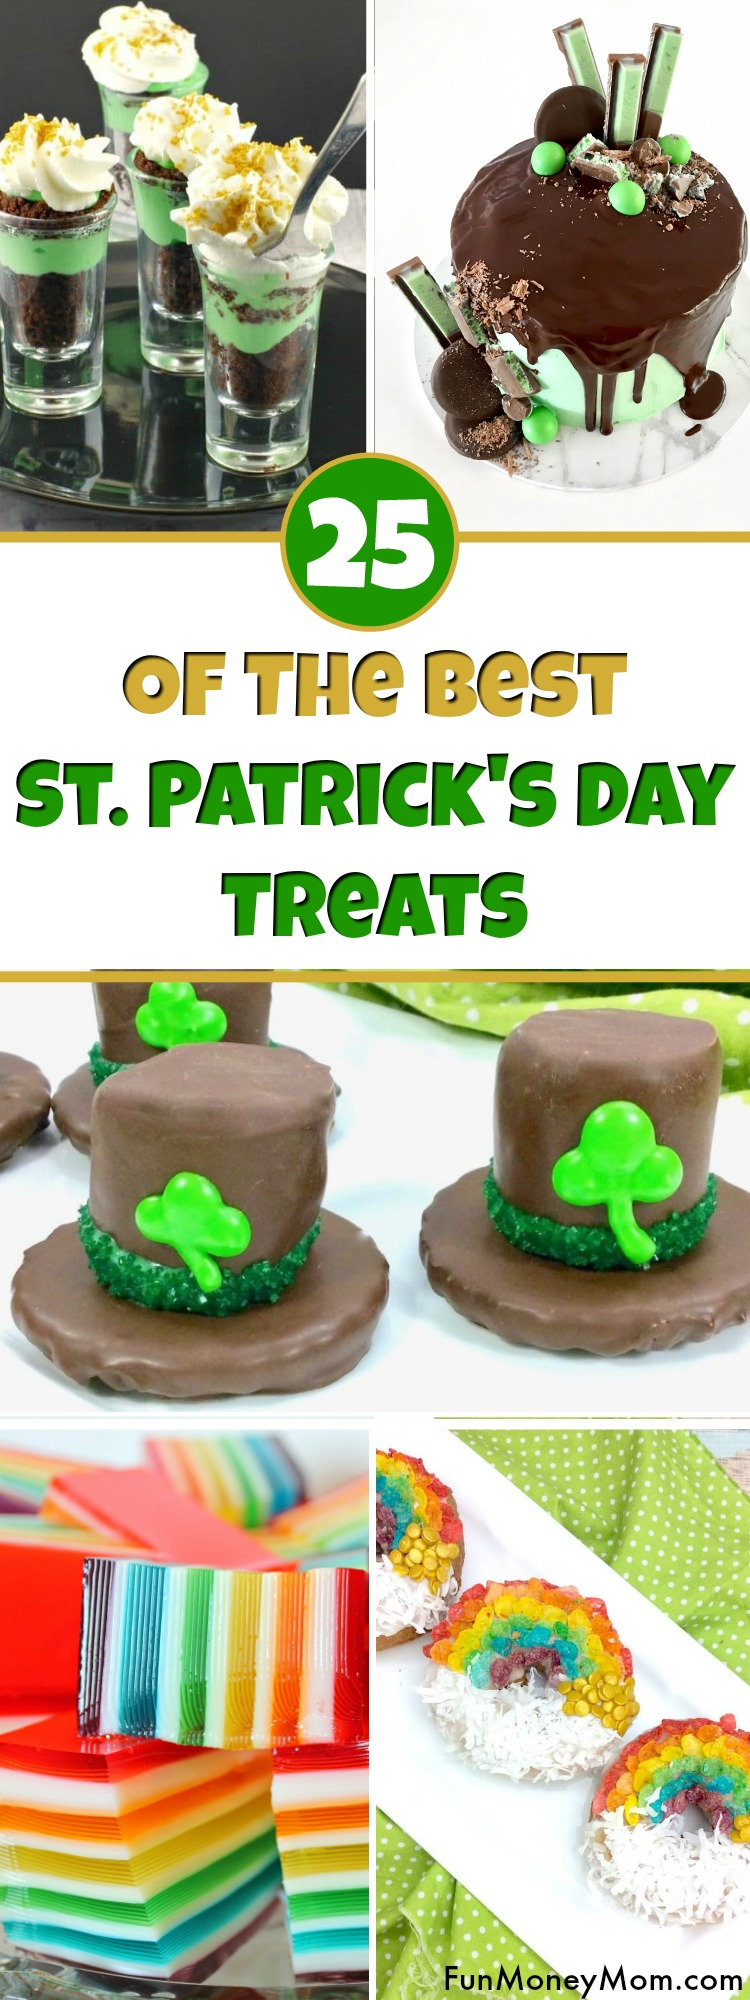 St. Patrick's Day Treats - Looking for the best St. Patrick's Day recipes? From rainbow food to marshmallow leprechaun hats, these yummy St. Patrick's Day recipes will have you covered. #StPatricksDay #StPatricksDayFood #StPatricksDayTreats